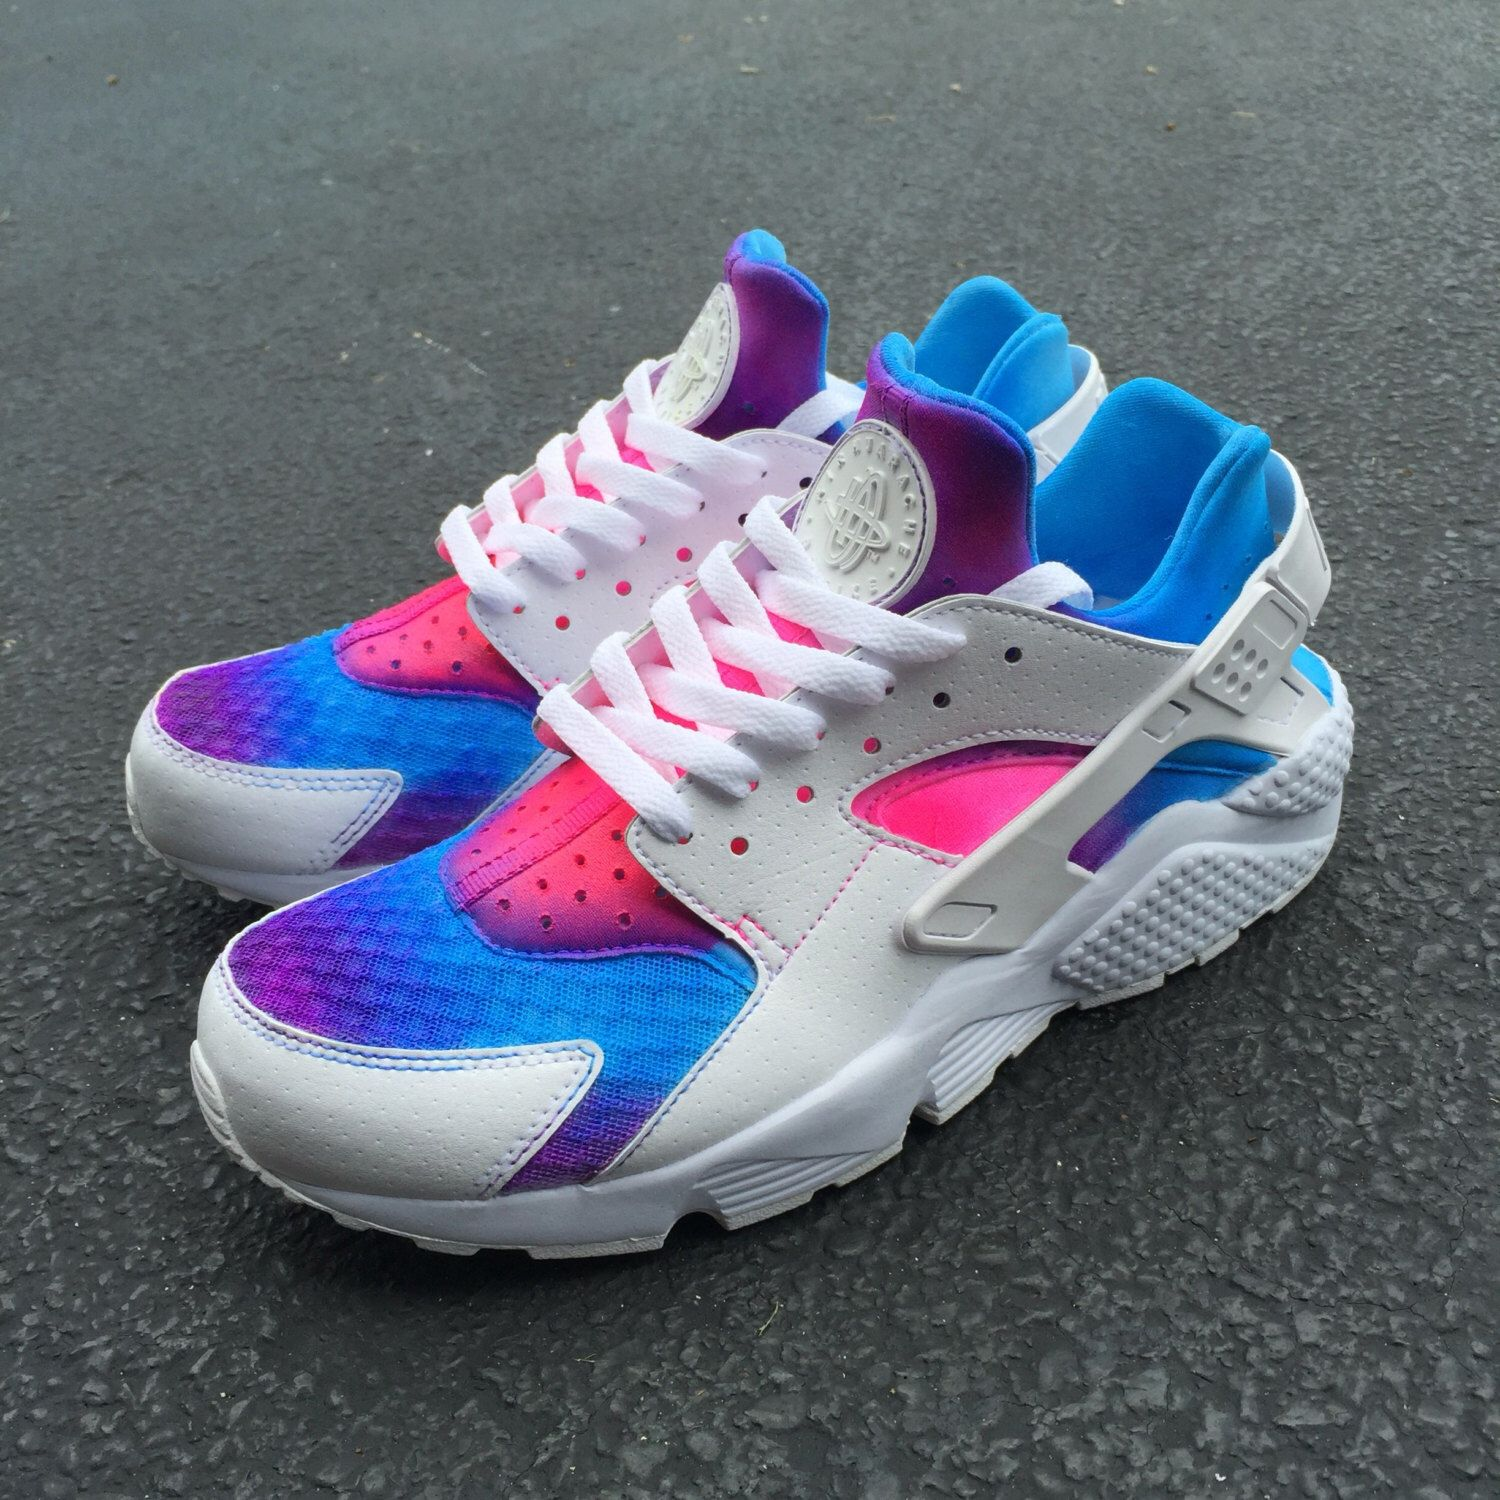 a0101a5e6254 ... custom nike huarache run women men pink purple blue all sizes jordan 11  force 1 retro